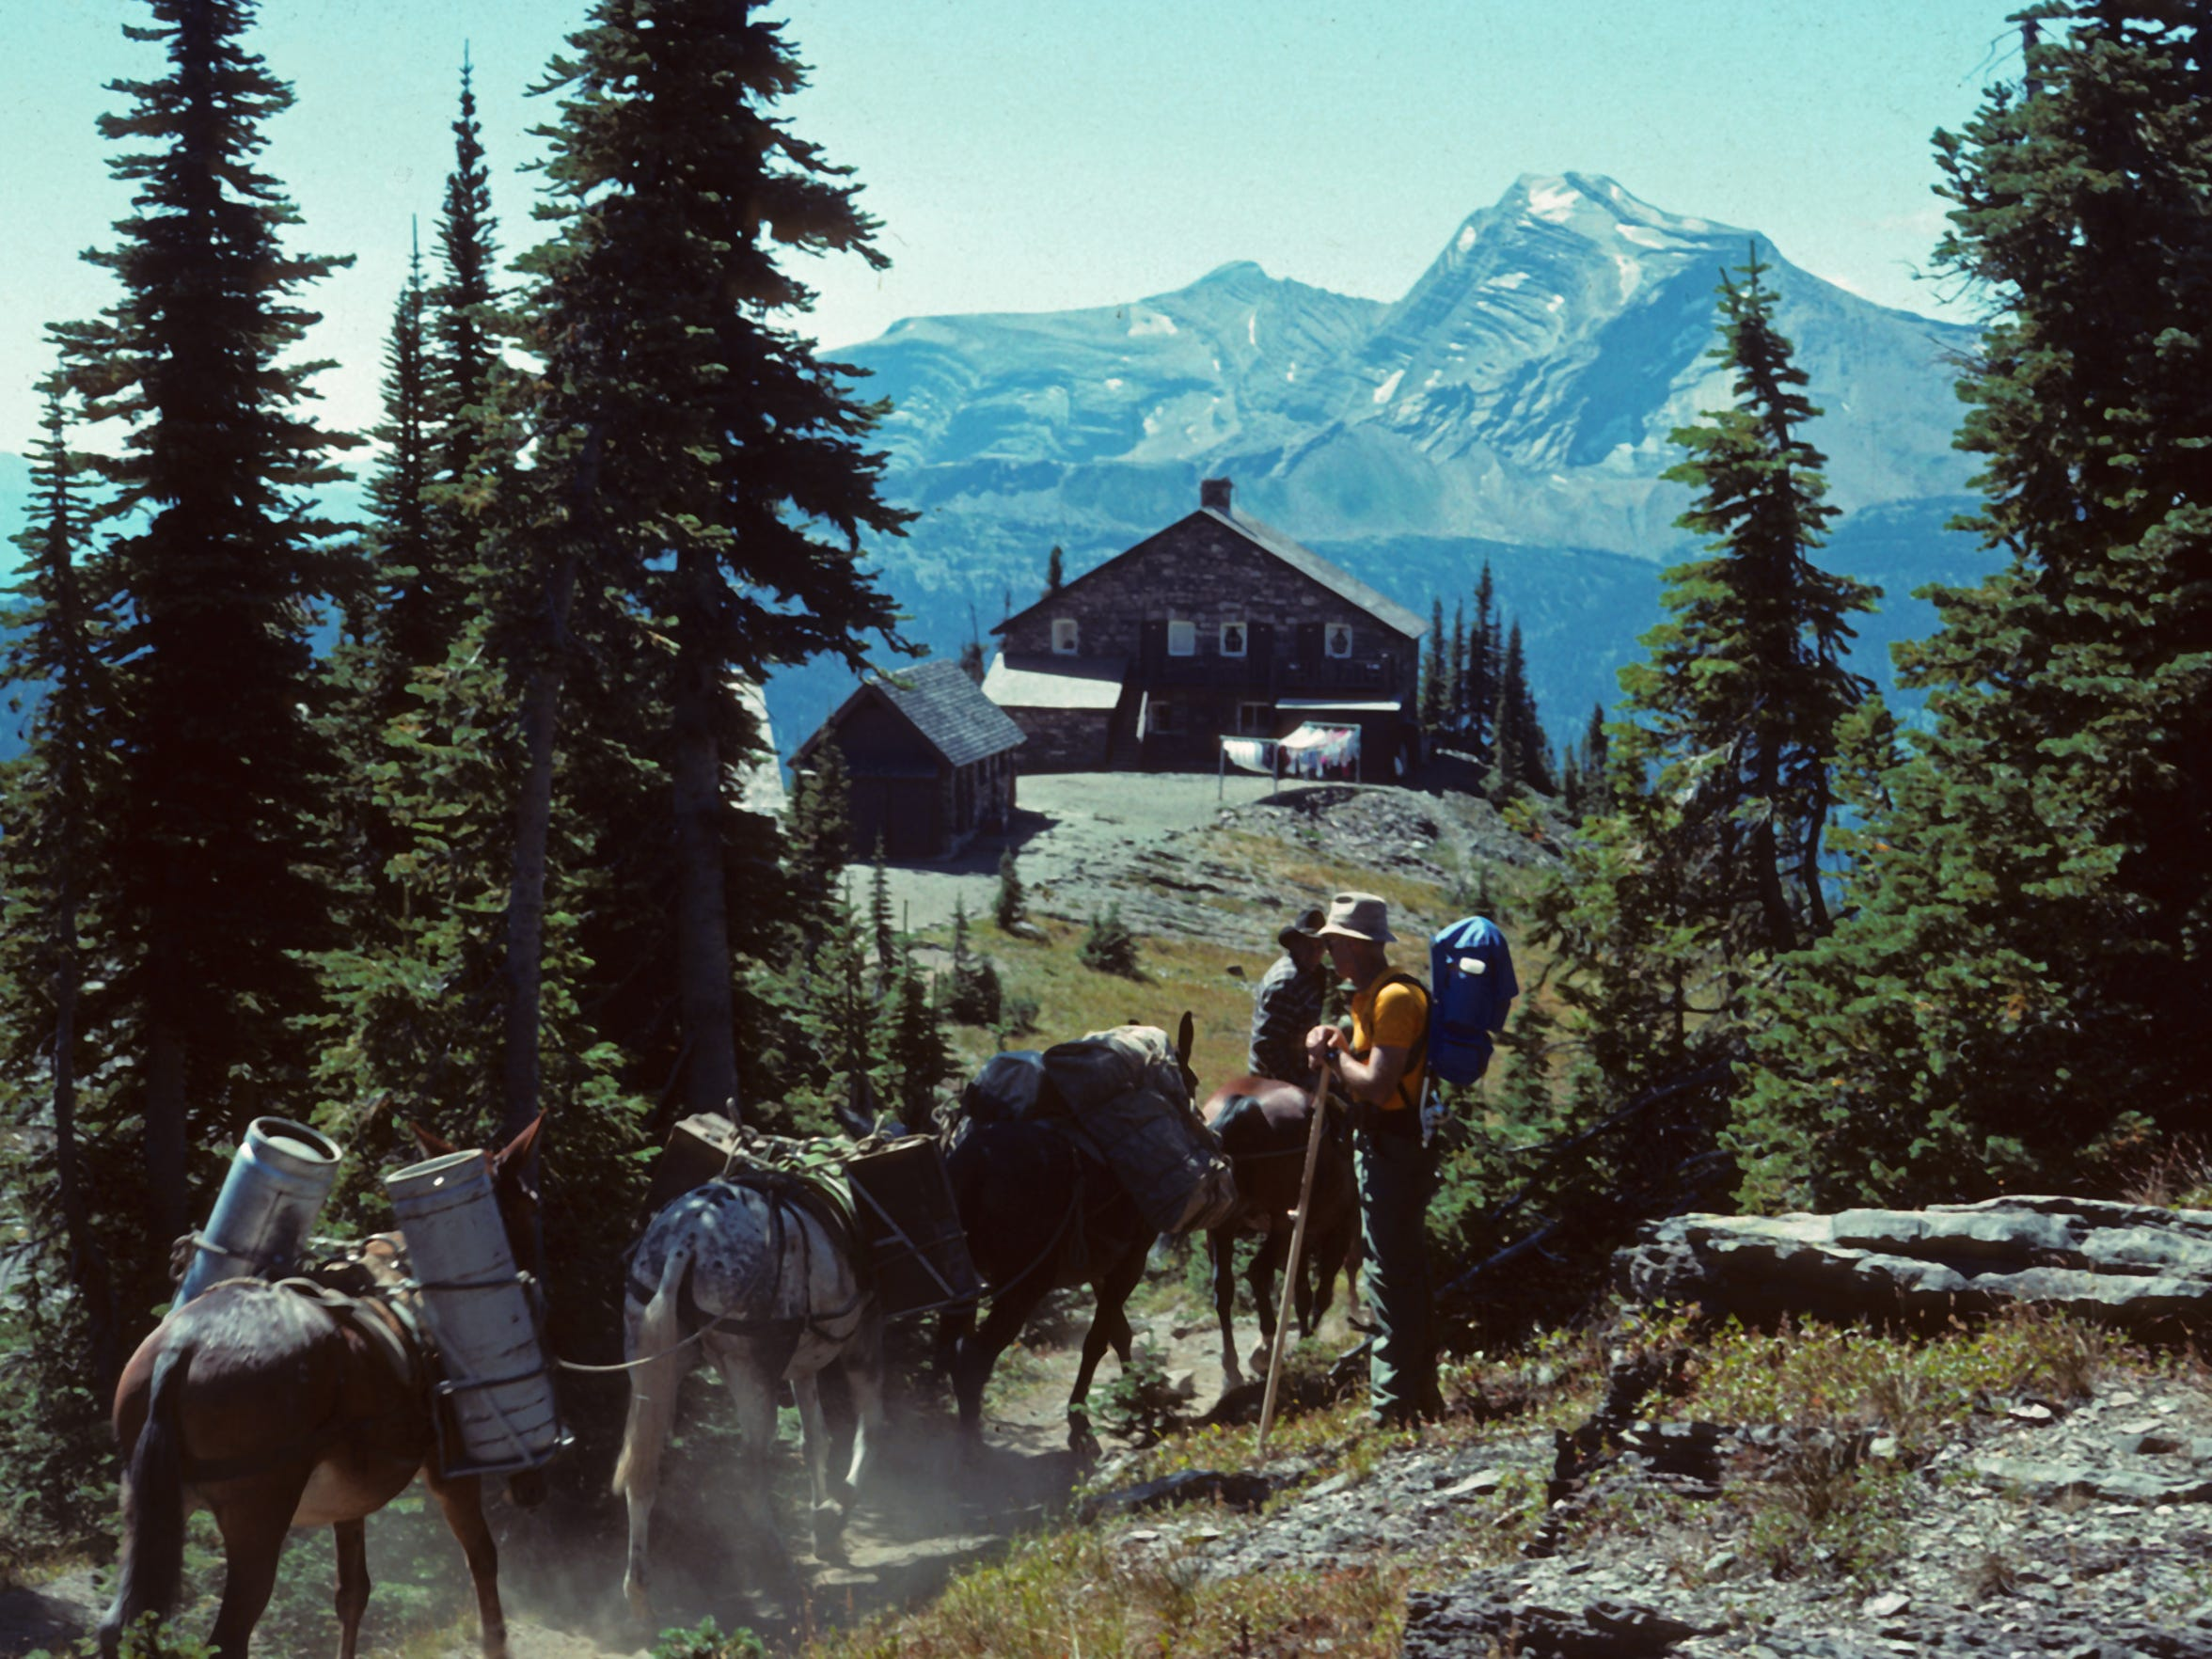 Granite Park Chalet backdropped by Heavens Peak; Glacier